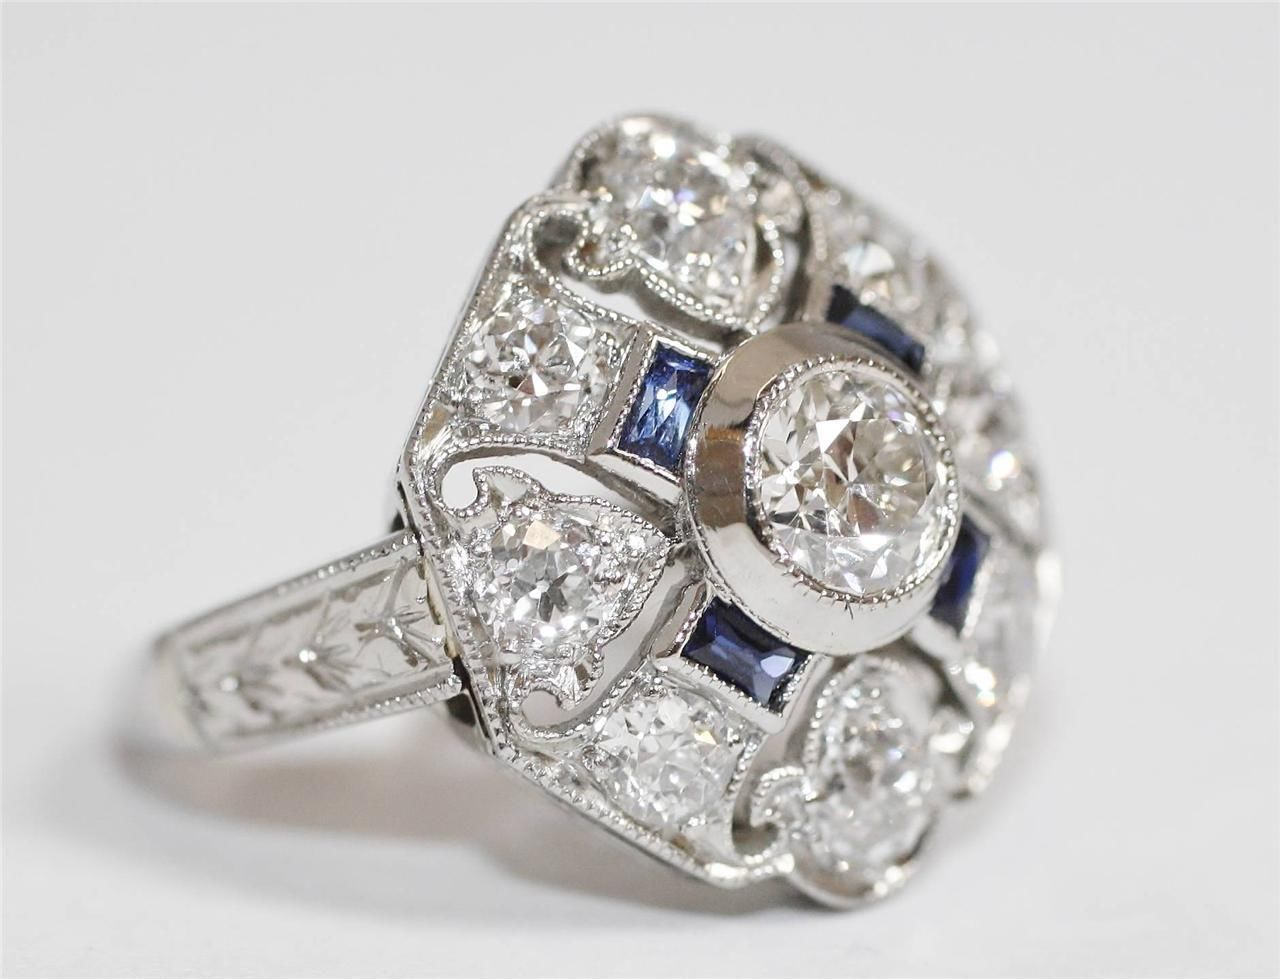 the best place to sell a diamond ring in riverside california - Best Place To Sell Wedding Ring